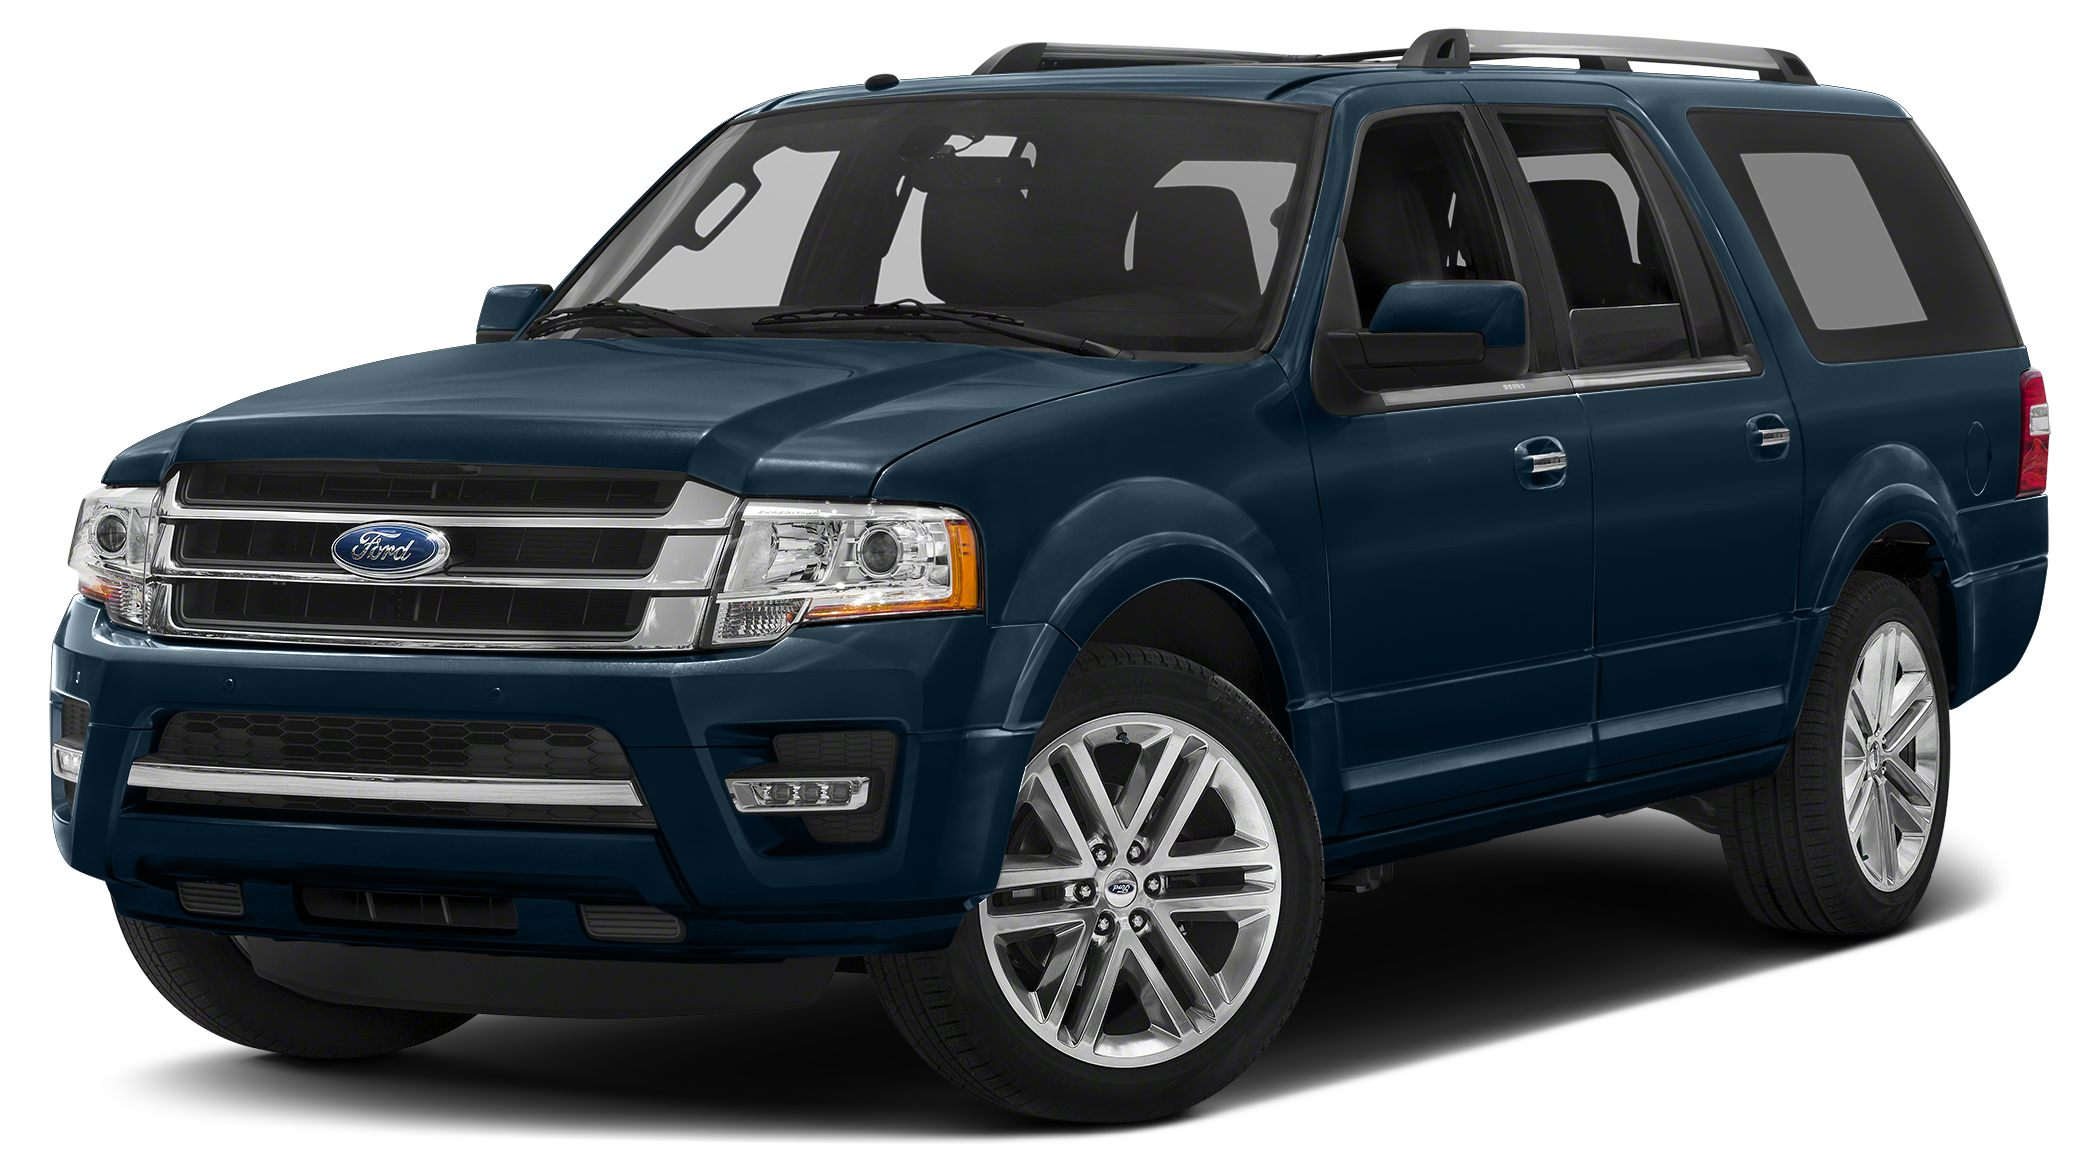 2017 Ford Expedition EL Limited The Ford Expedition features a new aggressive front end creates a